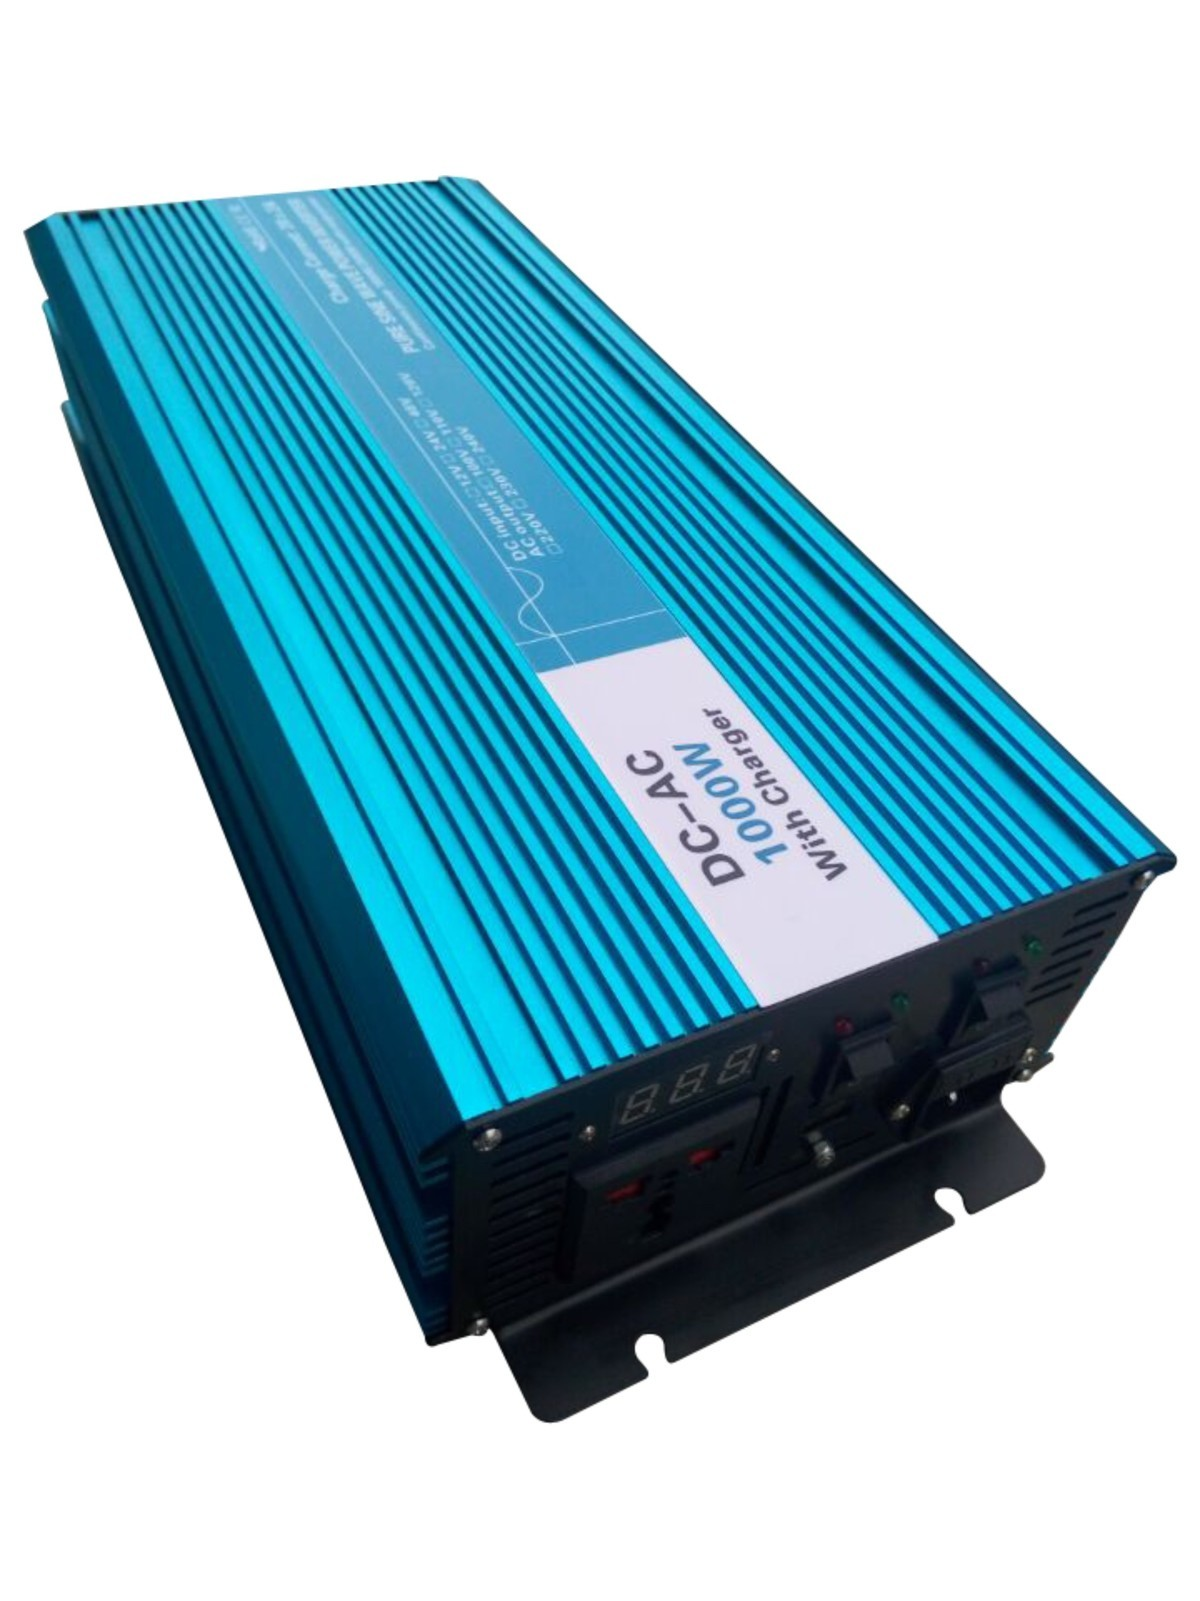 цена на 1000W Pure Sine Wave Inverter,DC 12V/24V/48V To AC 110V/220V,off Grid Solar power Inverter,voltage Converter with charger/UPS